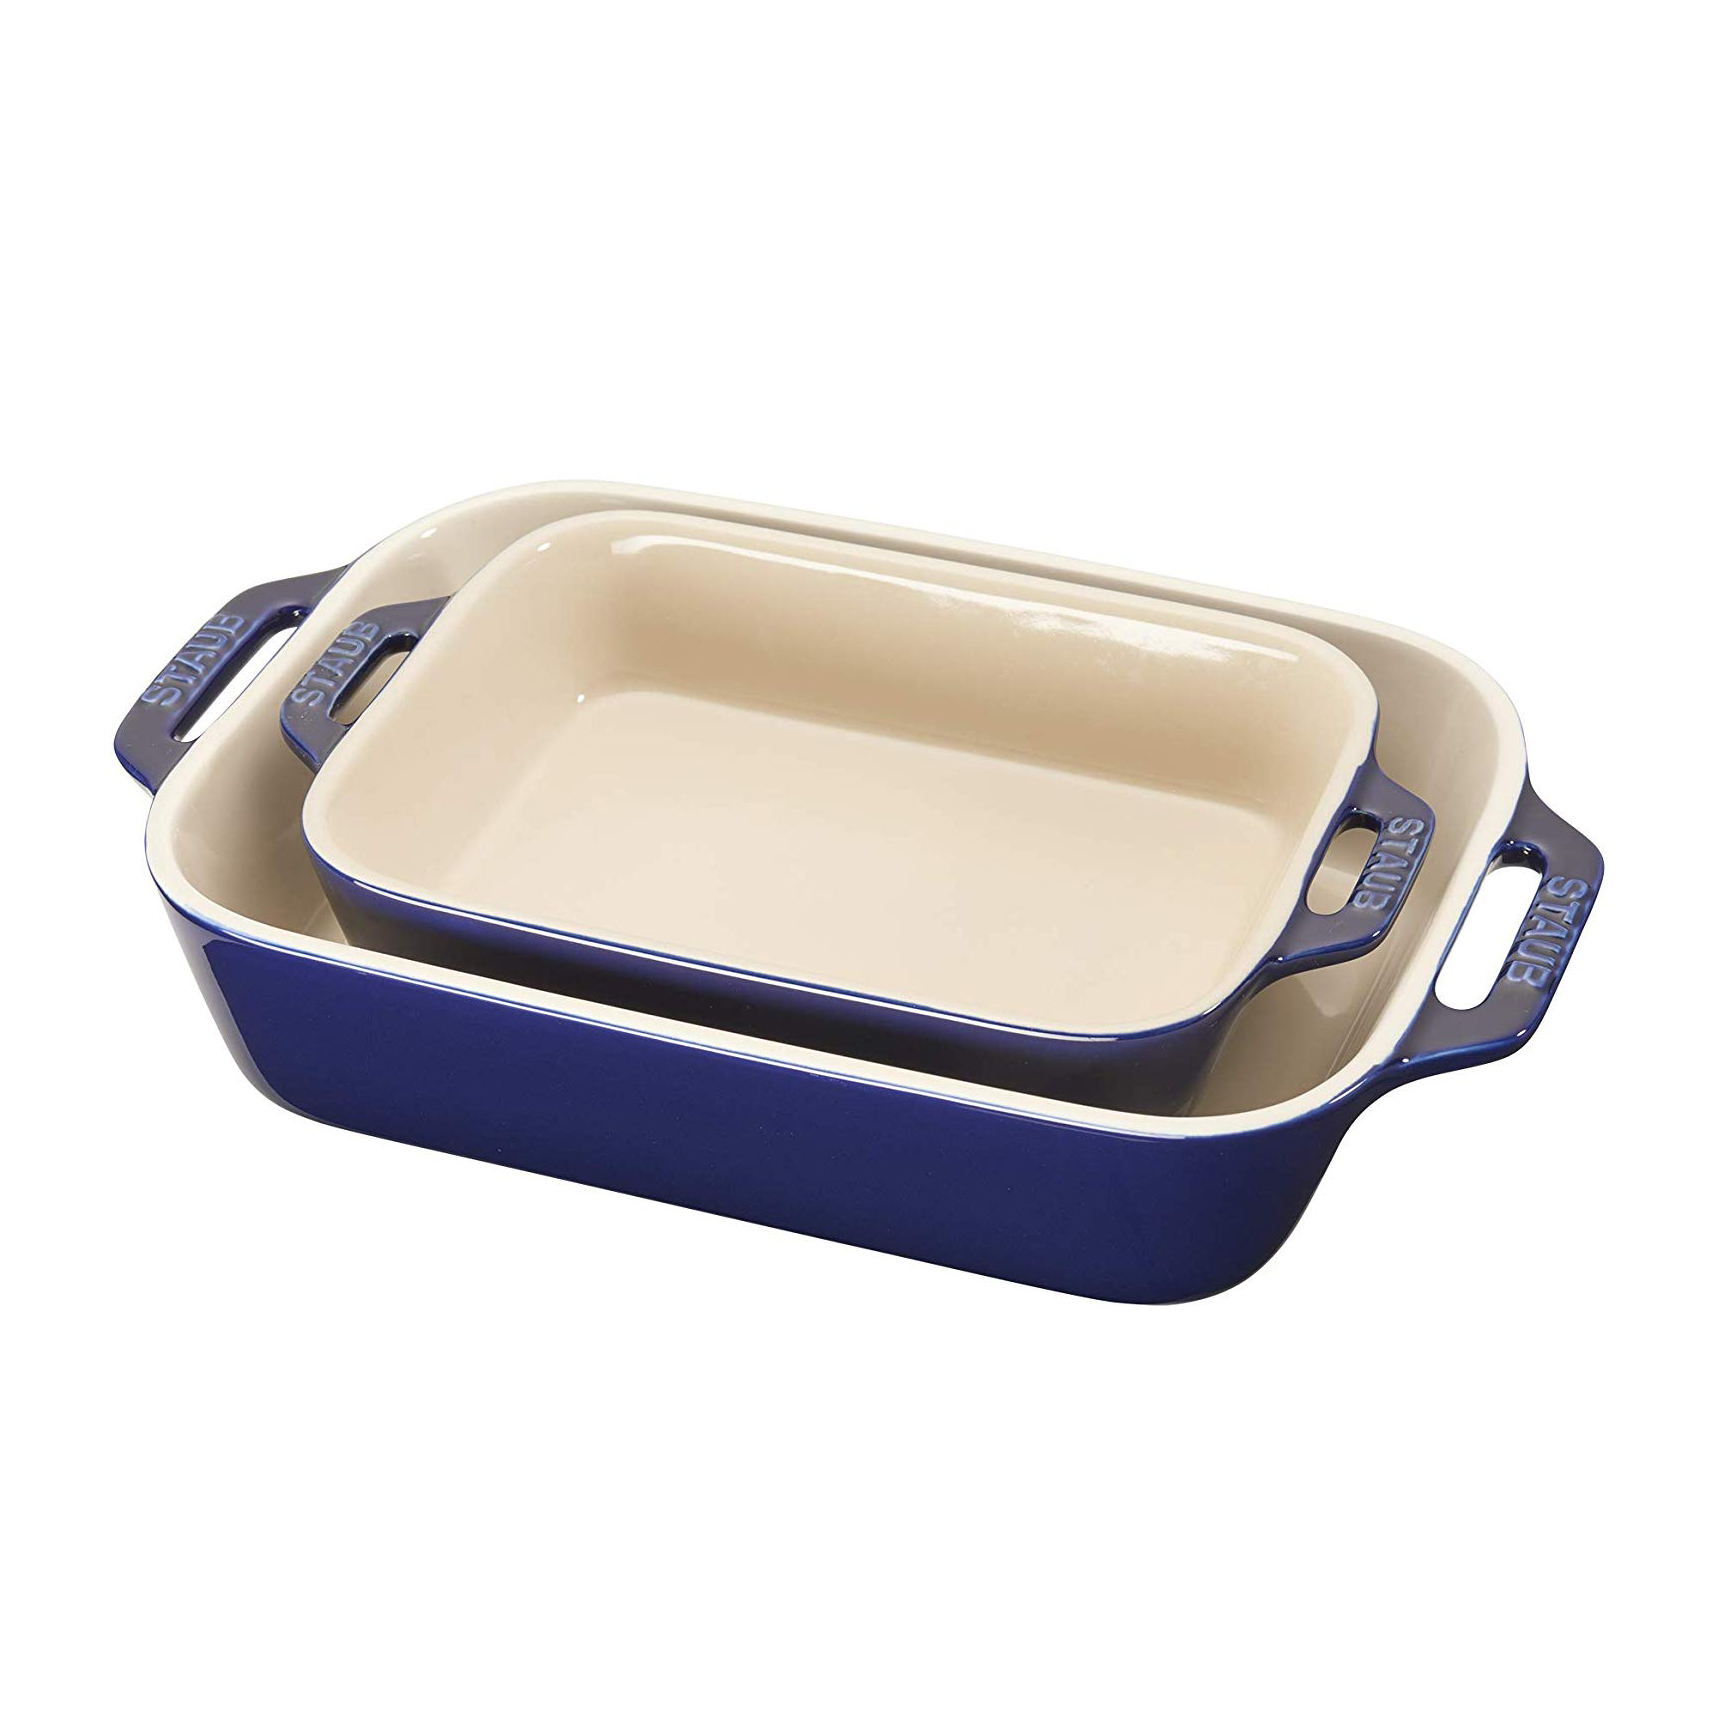 Staub Ceramic Baking Dish Set